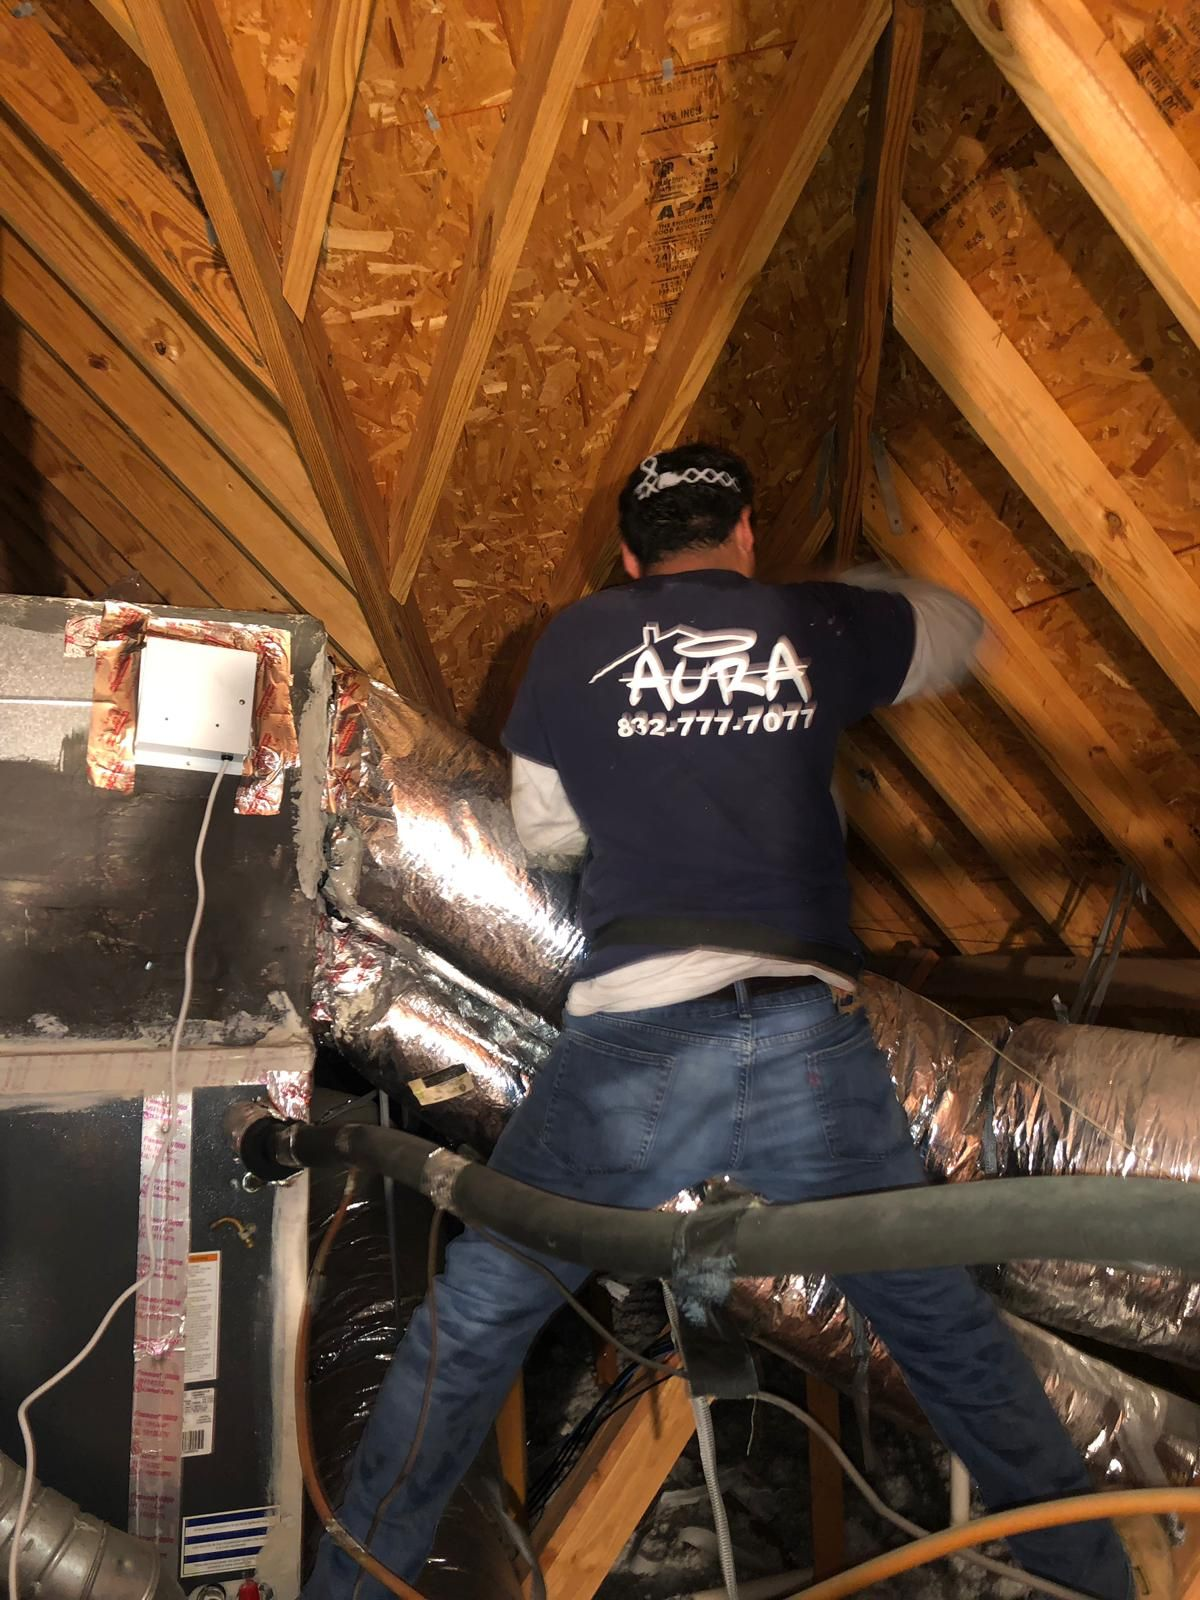 Aura Air Duct Cleaning technician in action 💪 We let the